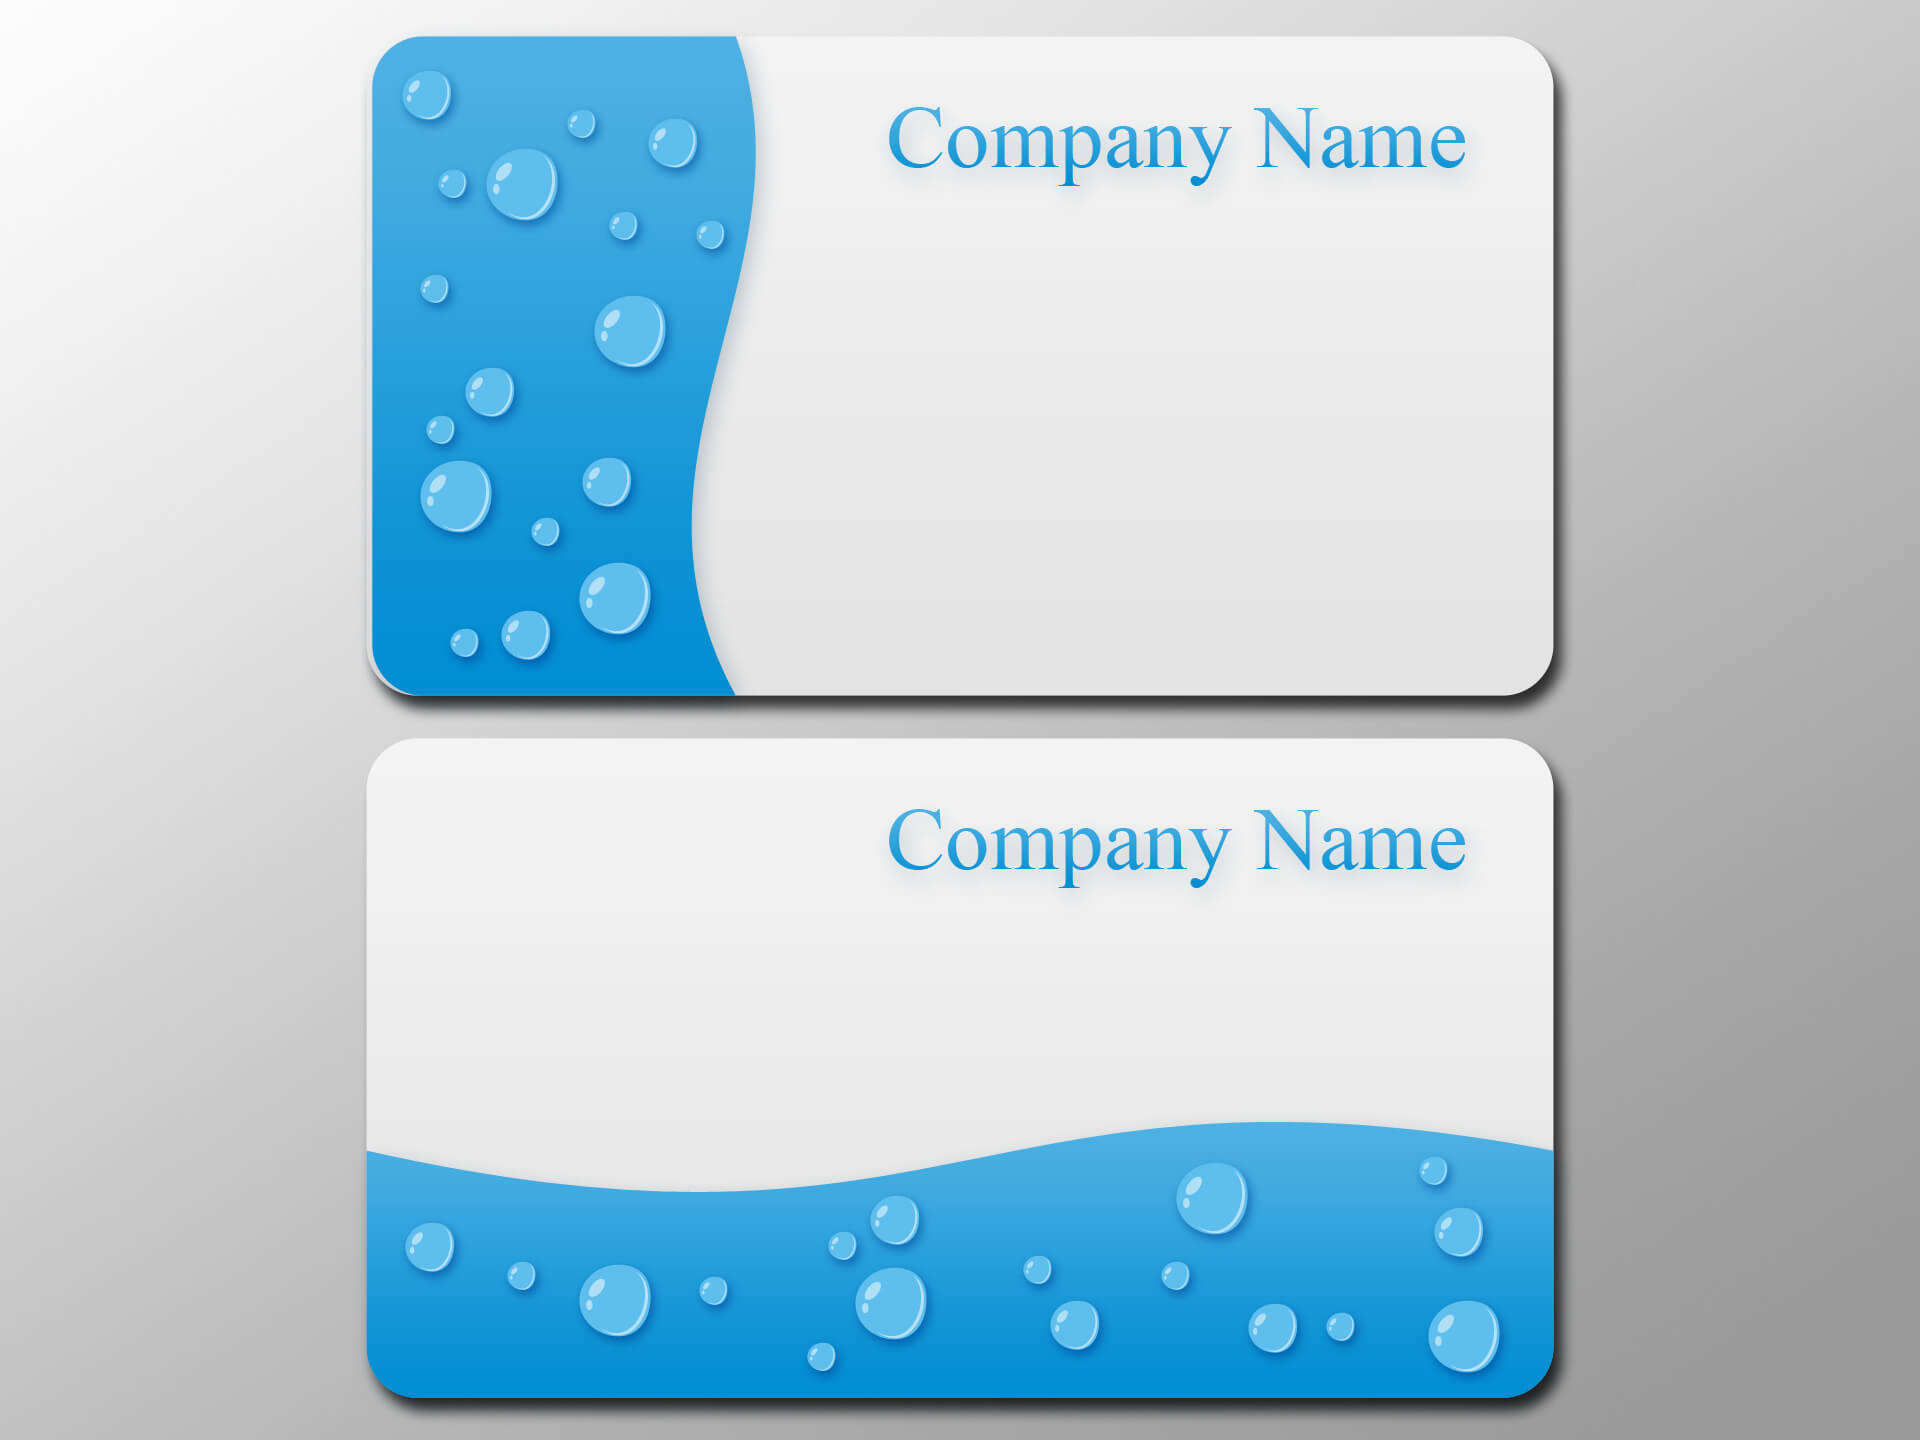 Business Card Template Photoshop - Blank Business Card With Regard To Blank Business Card Template Photoshop